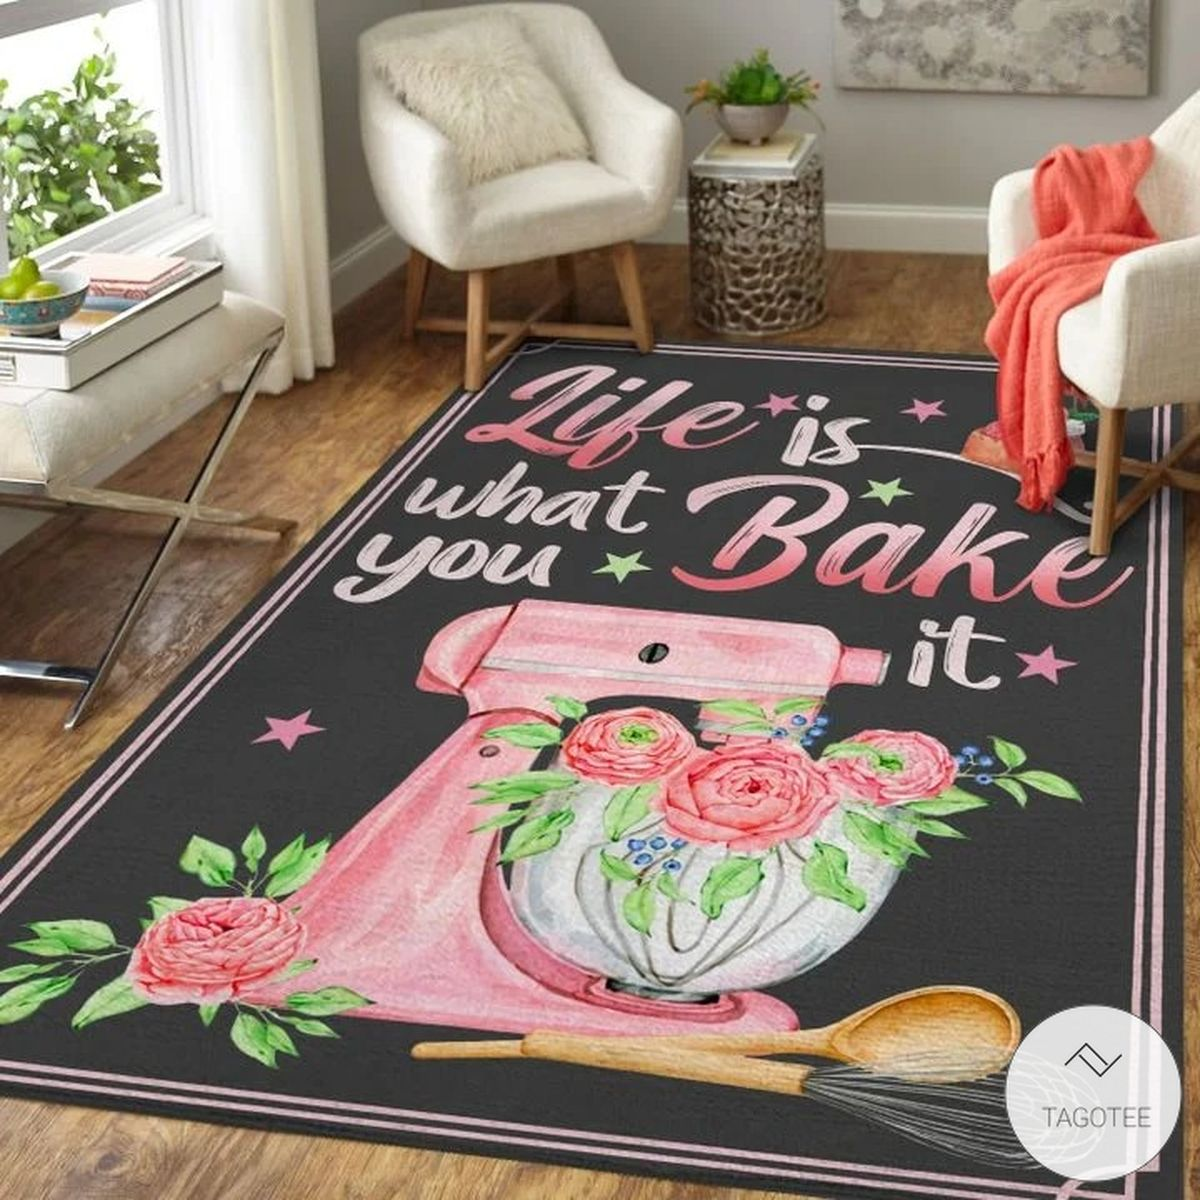 Life is what you bake it rugx